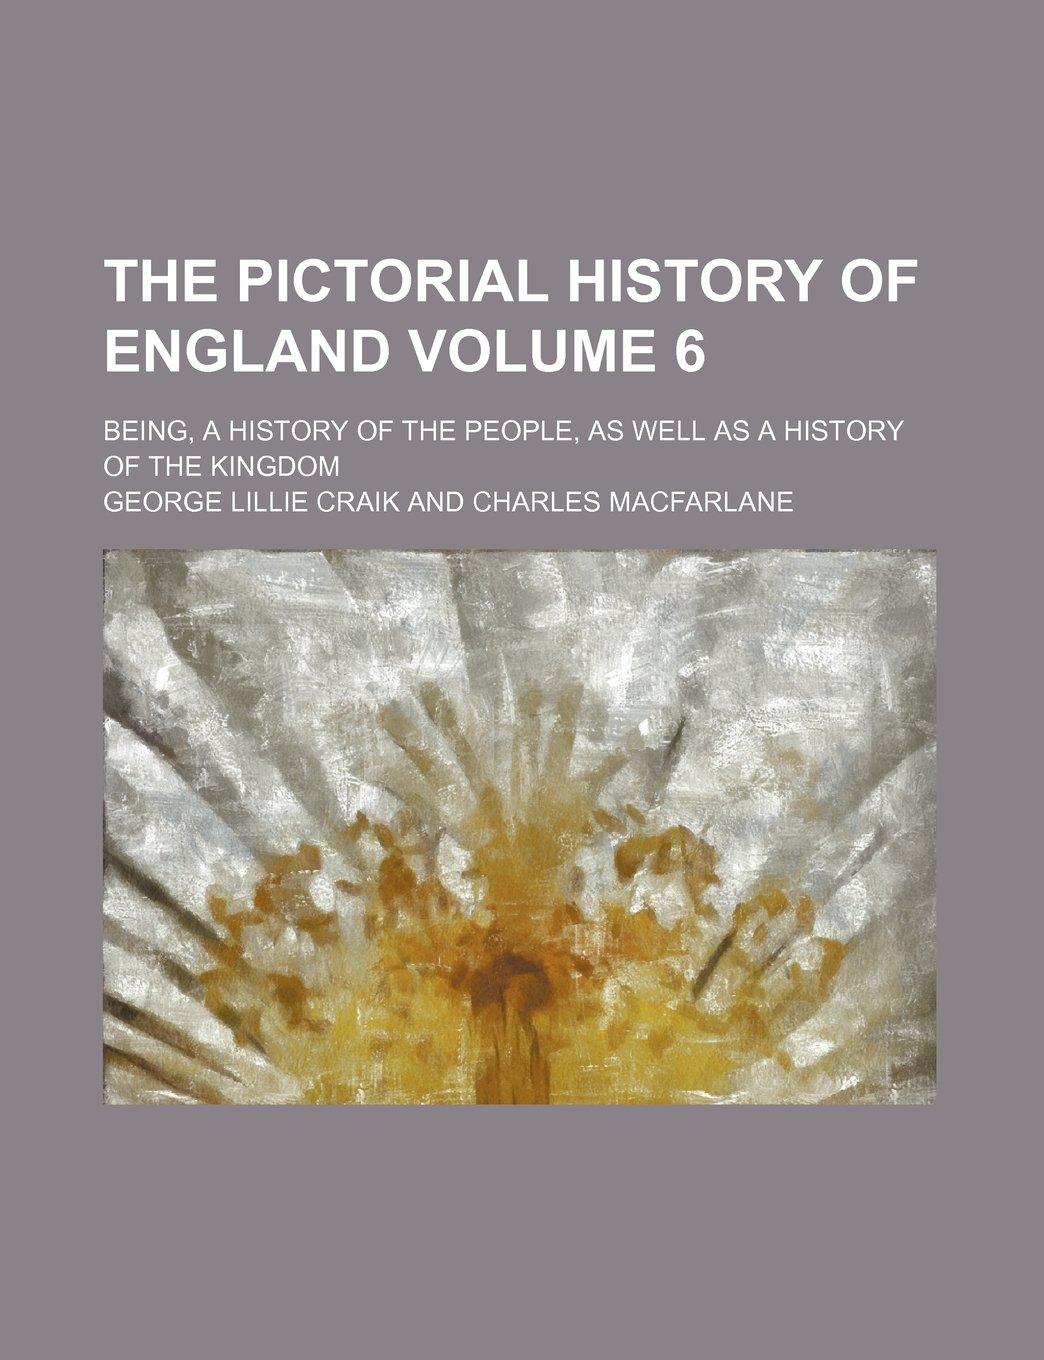 The pictorial history of England Volume 6; being, a history of the people, as well as a history of the kingdom PDF